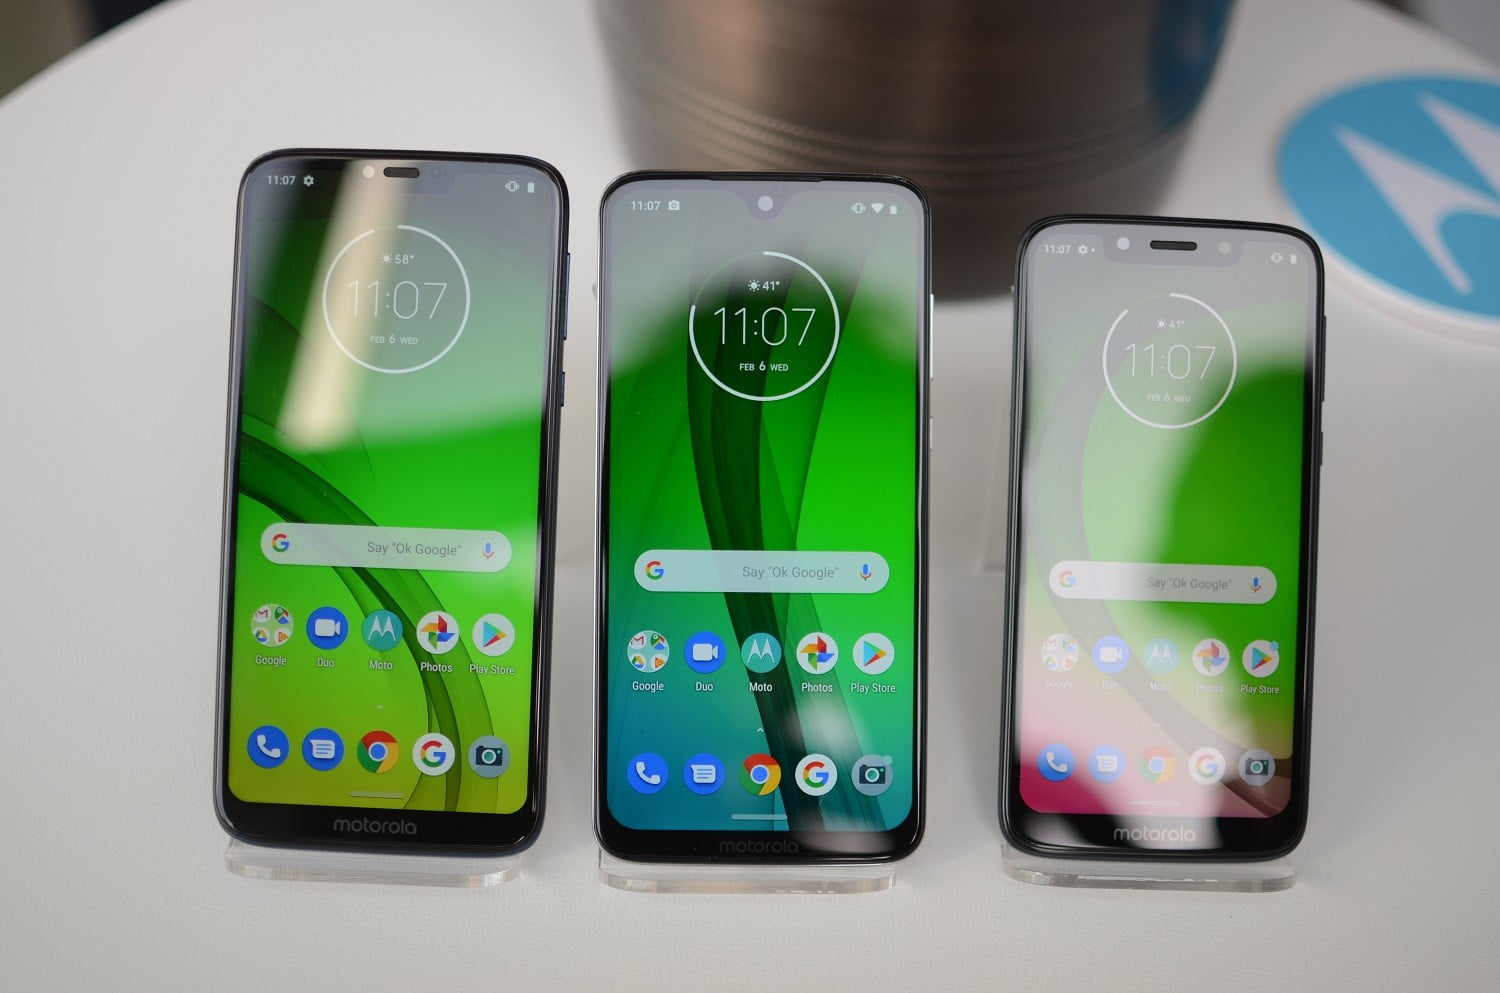 Moto G7 vs Moto G7 Plus vs Moto G7 Power vs Moto G7 Play ...